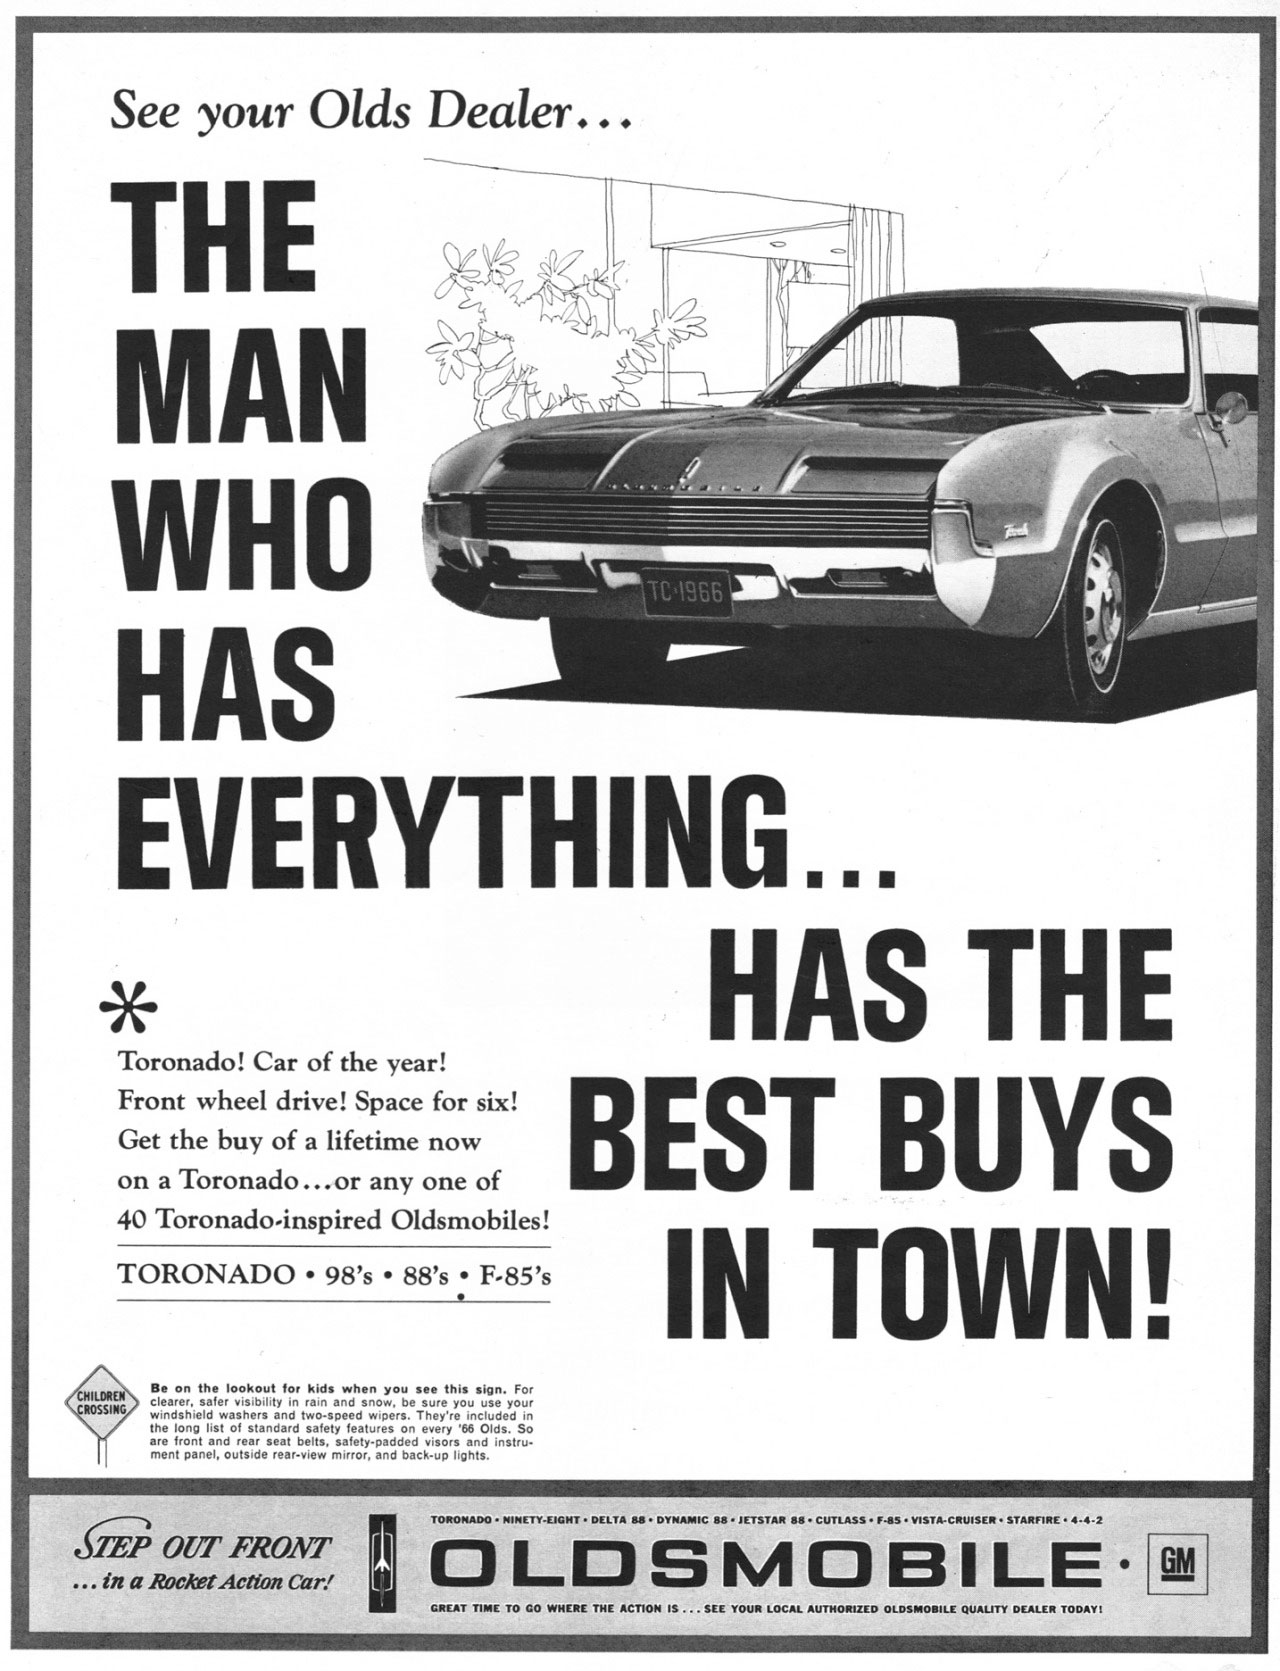 The man who has everything has the best buys in town!  The 1966 Oldsmobile Toronado! Car of the year! Front wheel drive! Space for six! BEST Buys Get the buy of a lifetime now on a Toronado ... or any one of 40 Toronado-inspired Oldsmobiles!   IN TOWN!  fiiThP OUT FRONT   TORONADO • NINETY-EIGHT • DELTA 88• DYNAMIC 88 • JETSTAR 88 • CUTLASS • F-85 • VISTA-CRUISER • STARFIRE • 4-4-2  ... in a Rocket Action Car! loll OLDS M 0 B I L E  GREAT TIME TO 00 WHERE THE ACTION IS ... SEE YOUR LOCAL AUTHORIZED OLDSMOBILE QUALITY DEALER TODAY,  GM